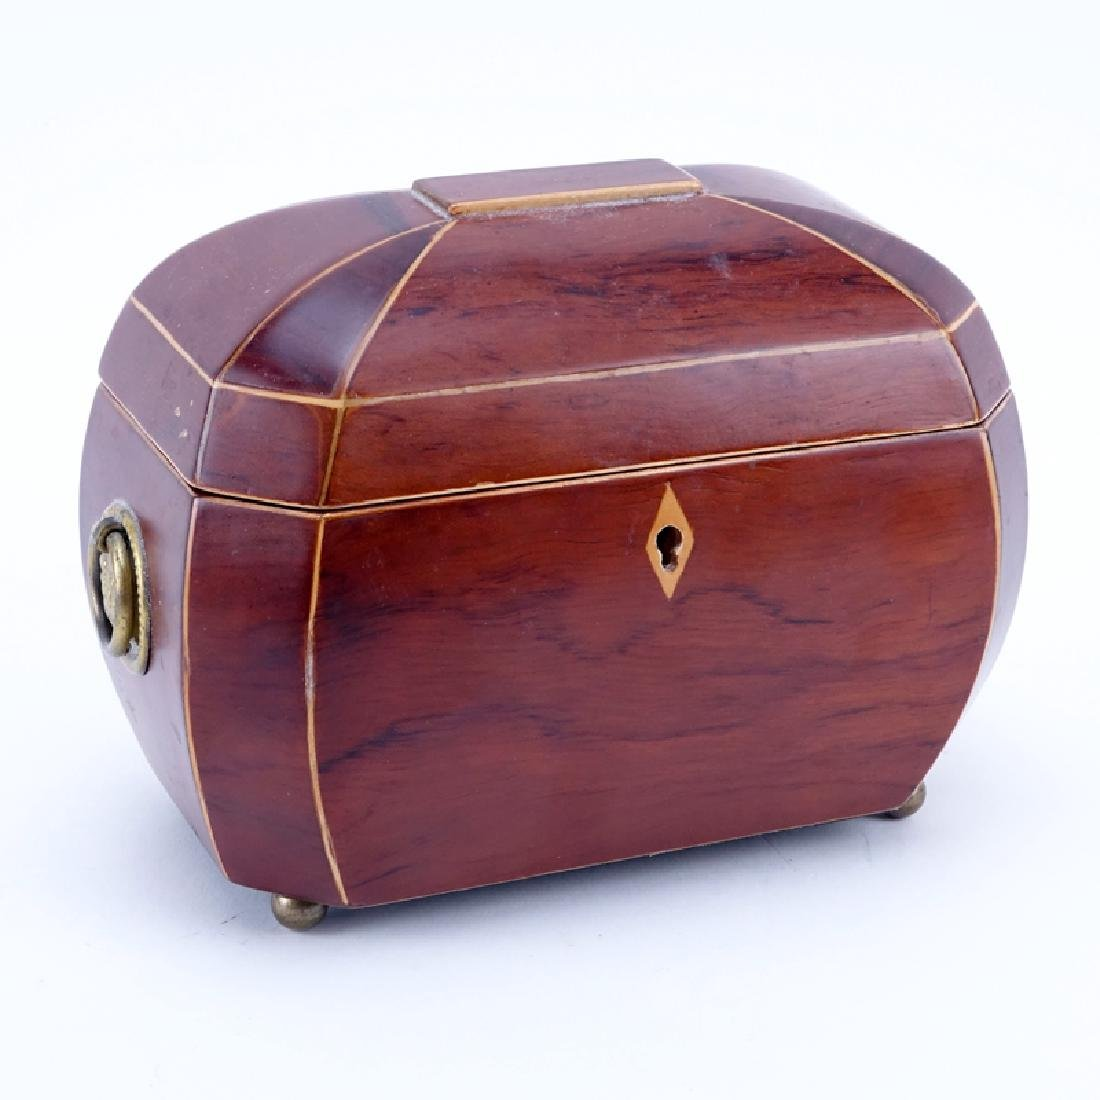 Modern Wooden Jewelry Box with Brass Handles and Ball